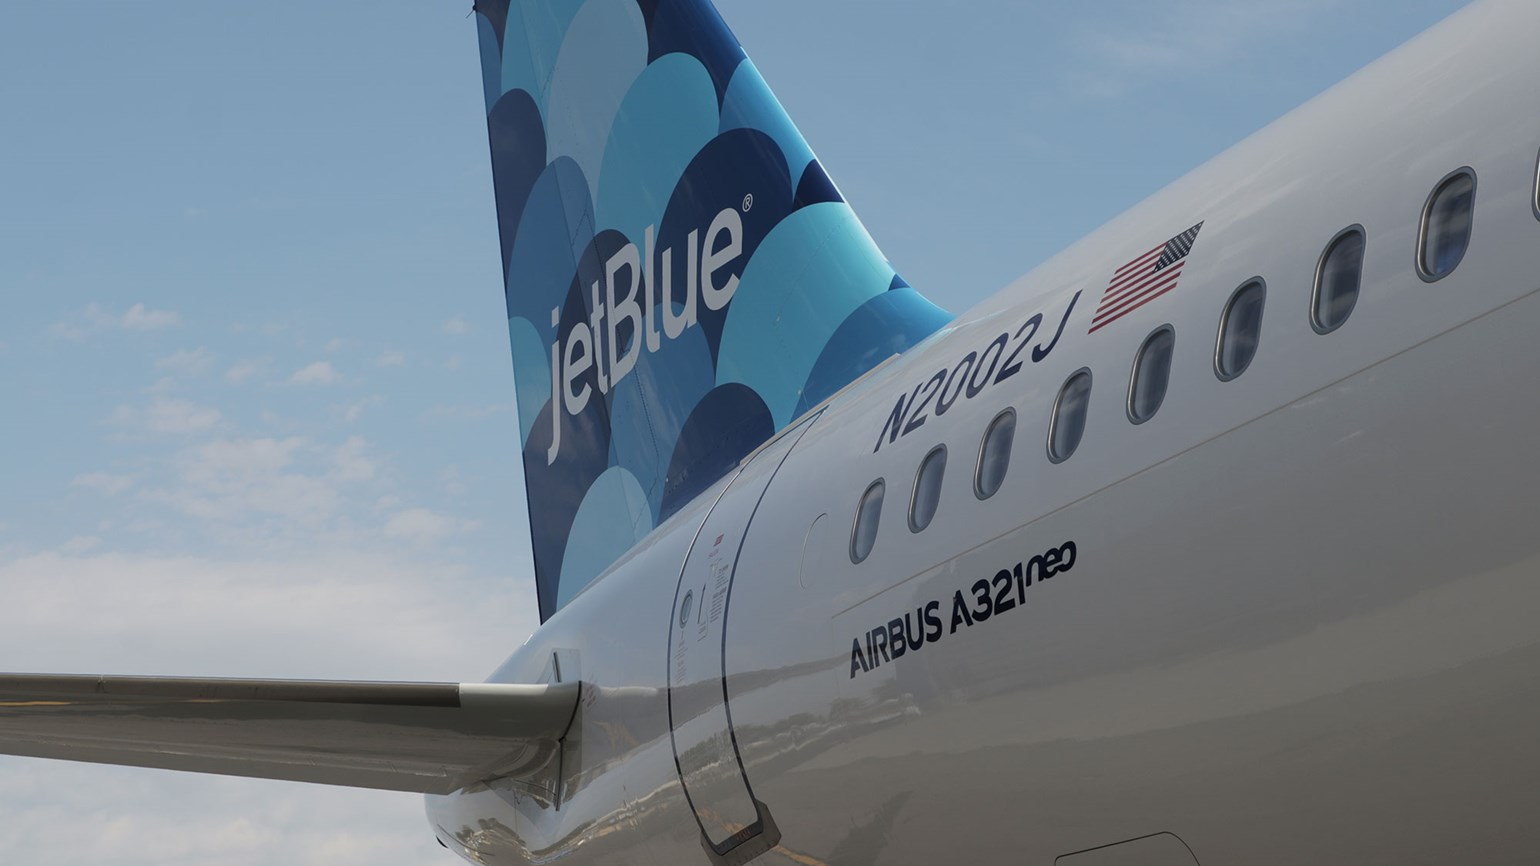 Amid coronavirus crisis, JetBlue temporarily allows free changes